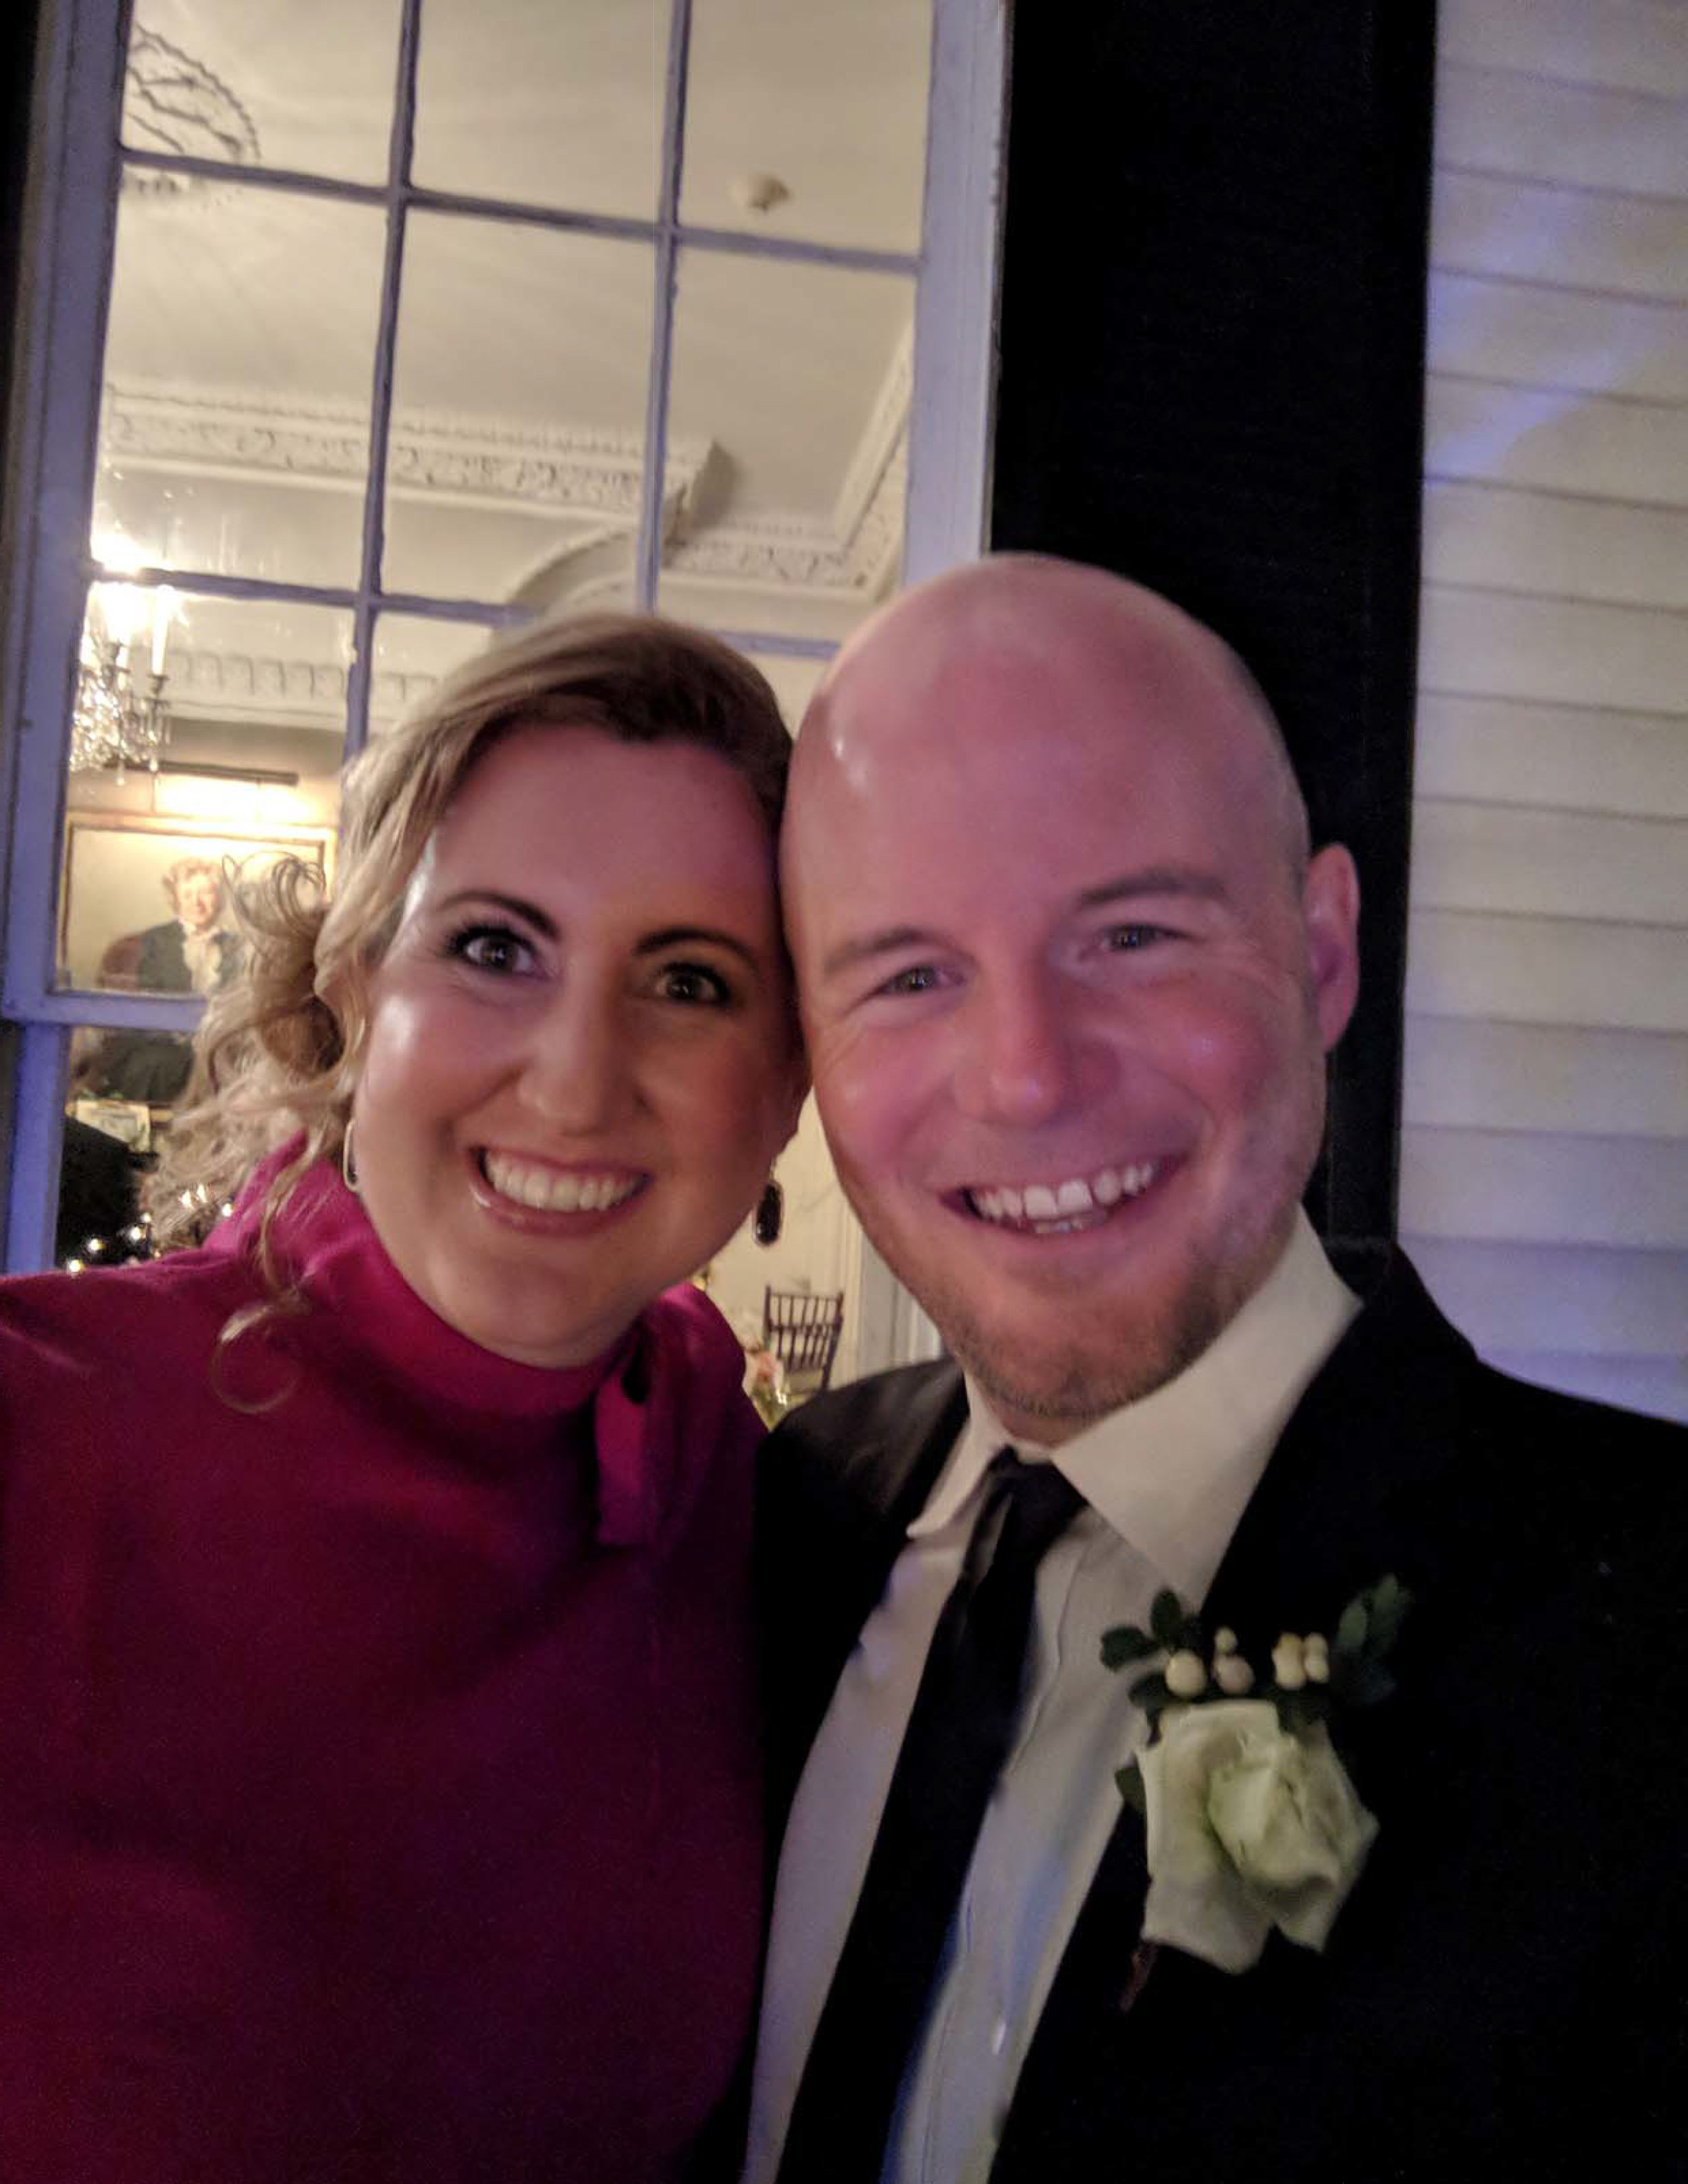 Hanna and Scott Friedrich moved to Arlington from Washington State to be closer to relatives. They found a neighborhood that felt like family.